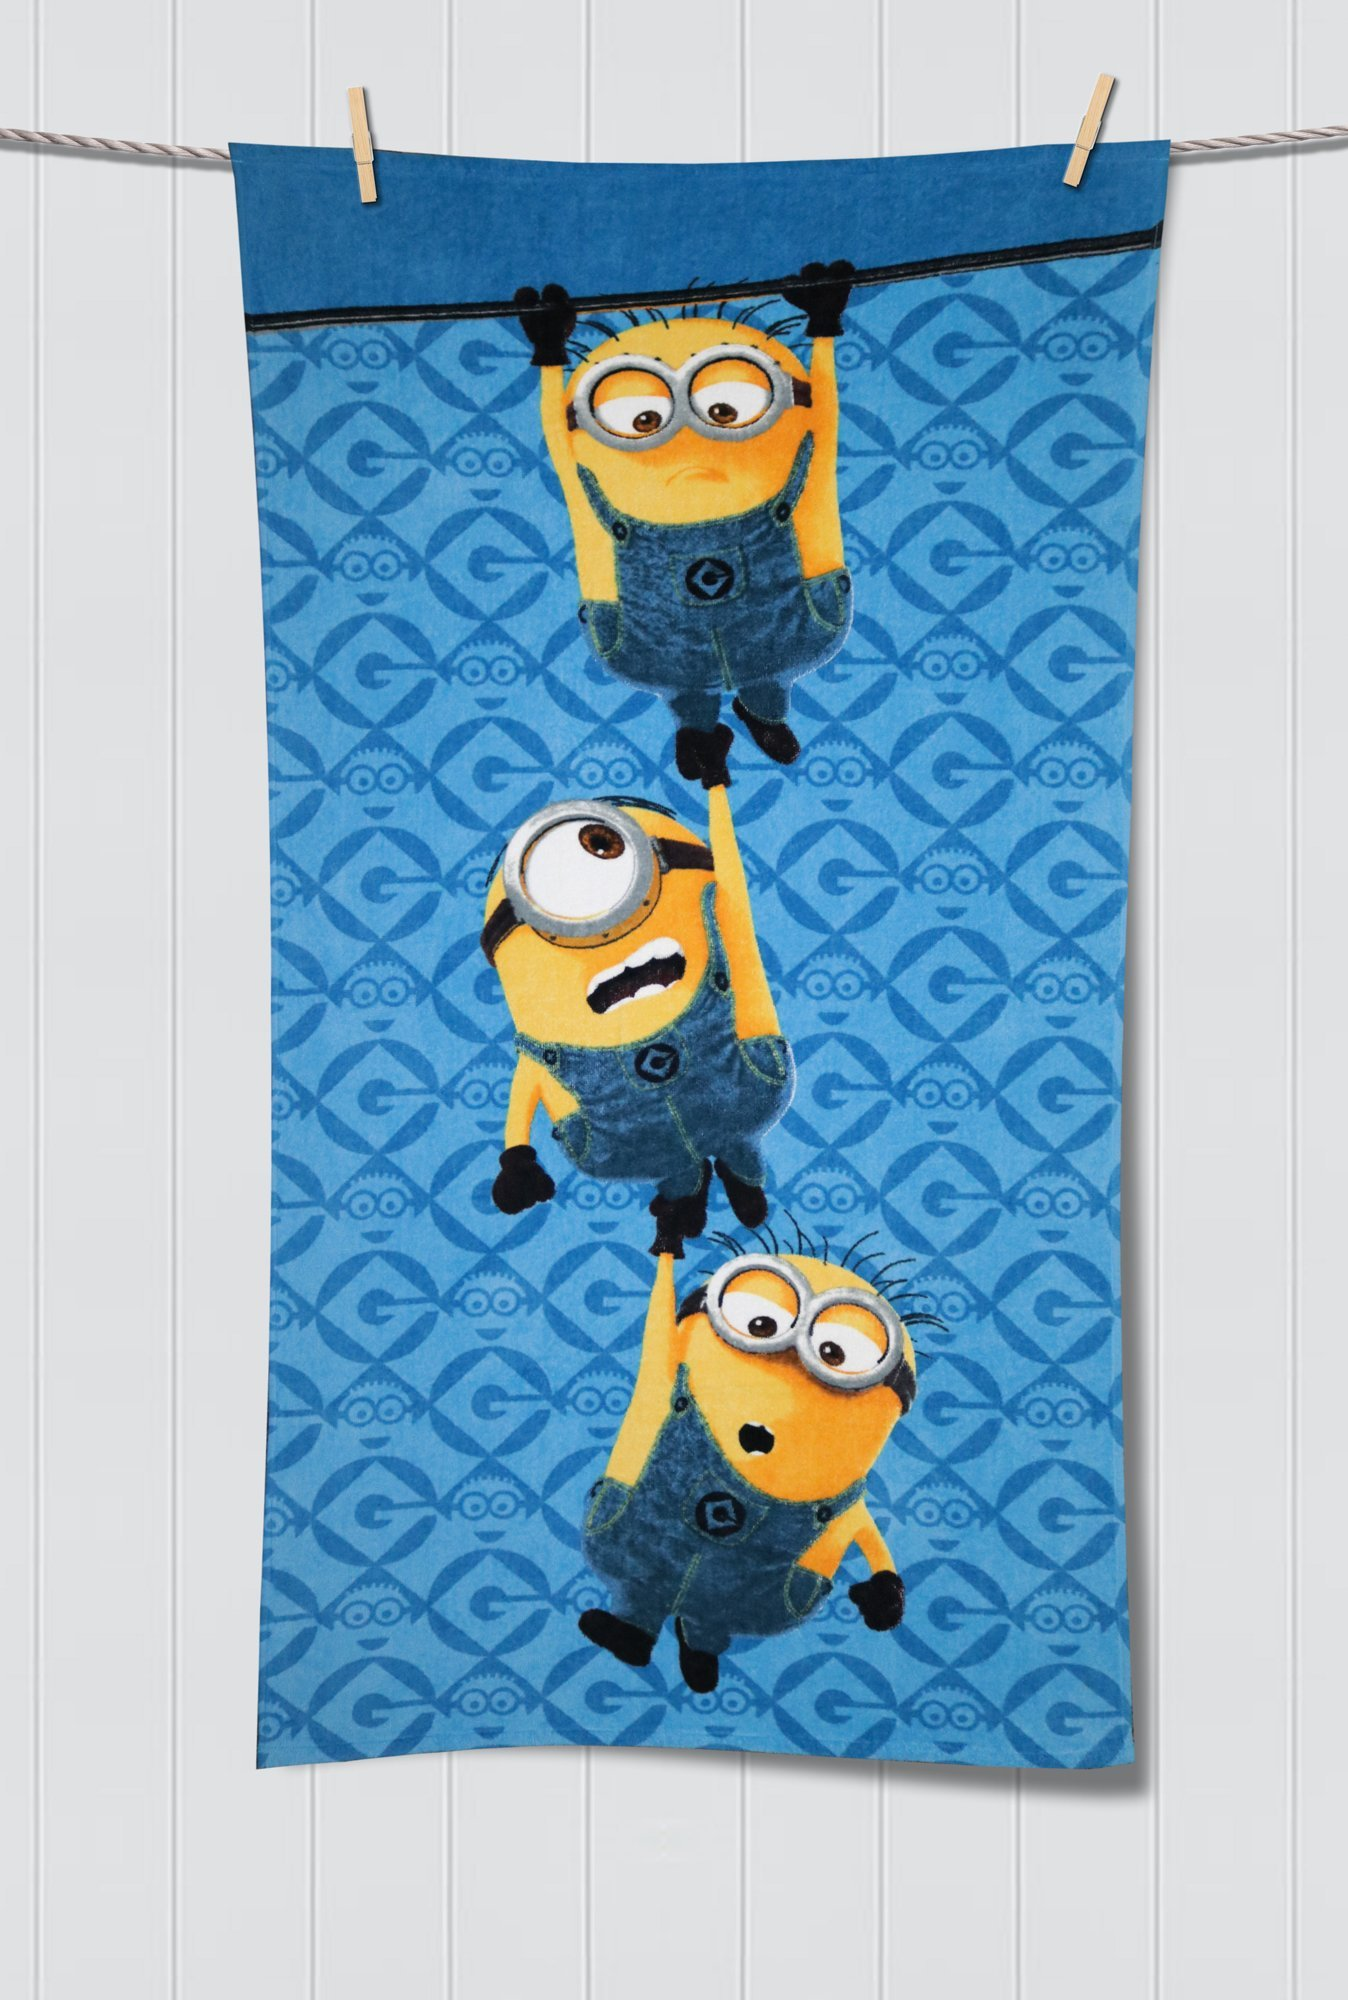 Buy spaces minions blue yellow cotton wool kids bath towel online at best  price tata cliq 2e36f0dd2798